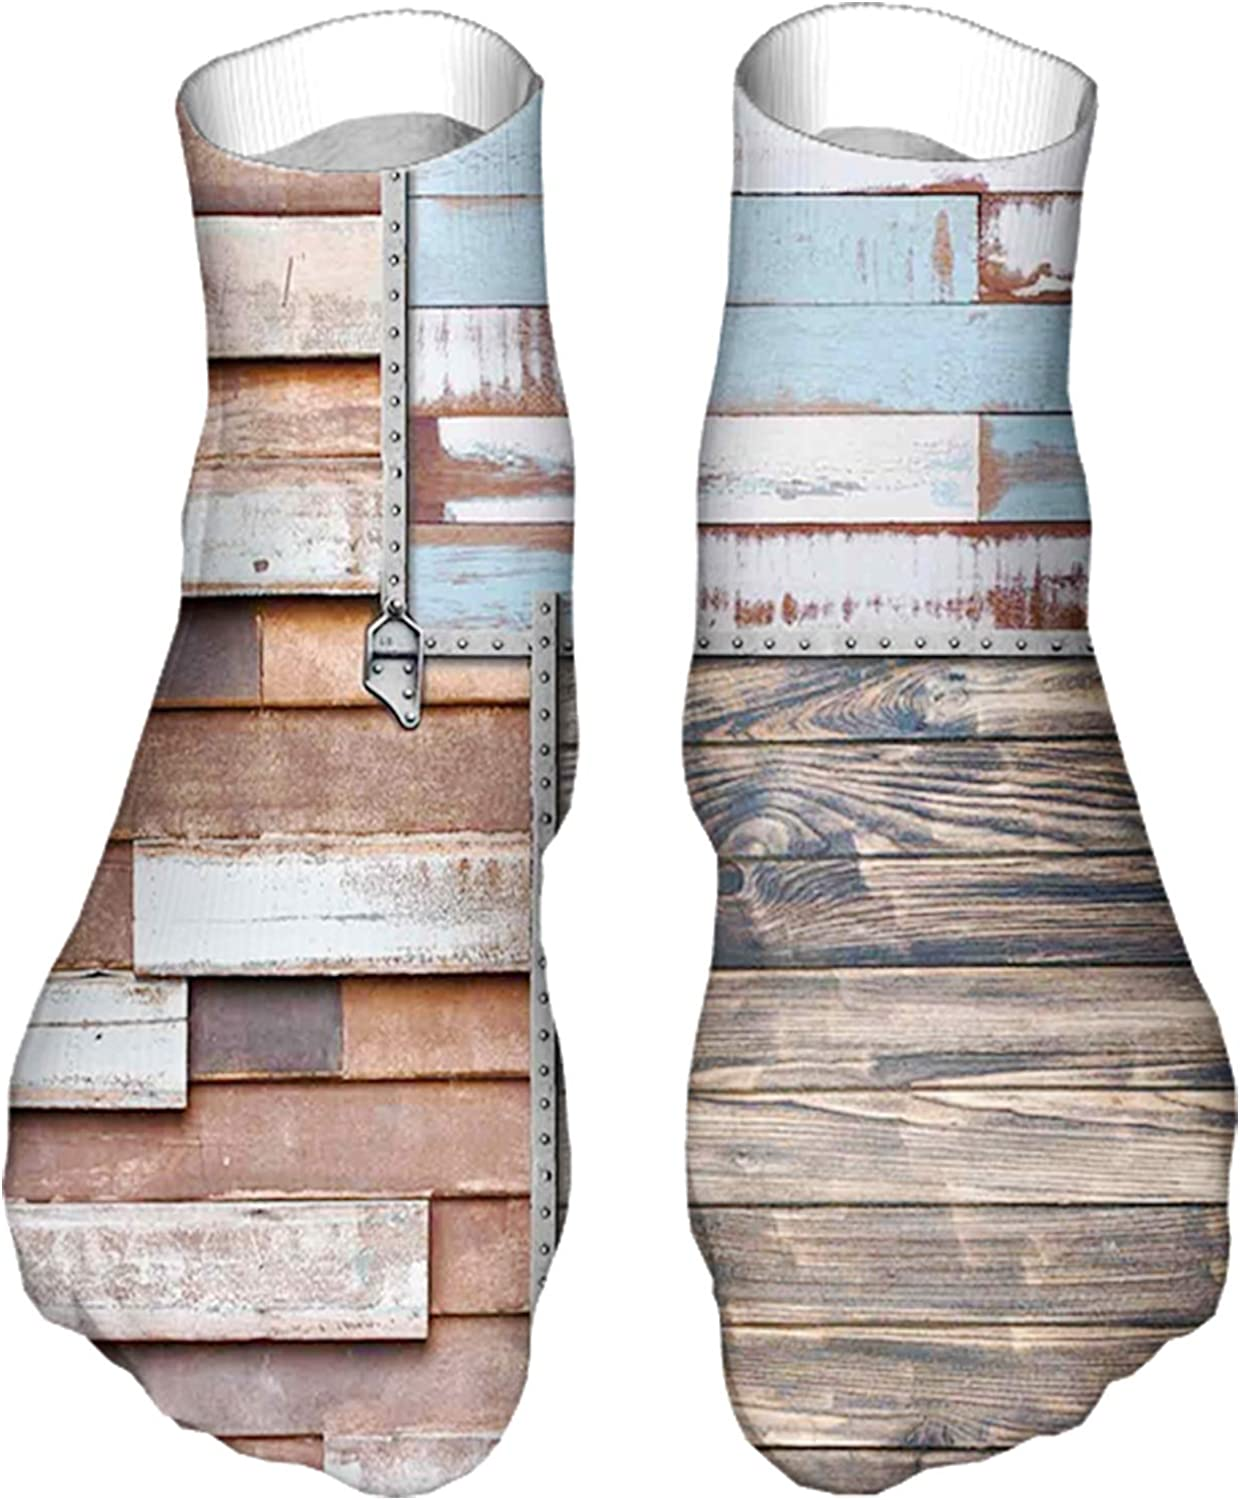 Men's and Women's Fun Socks Printed Cool Novelty Funny Socks,Modern and Farm Themed Old Wooden Detailed Modern Design